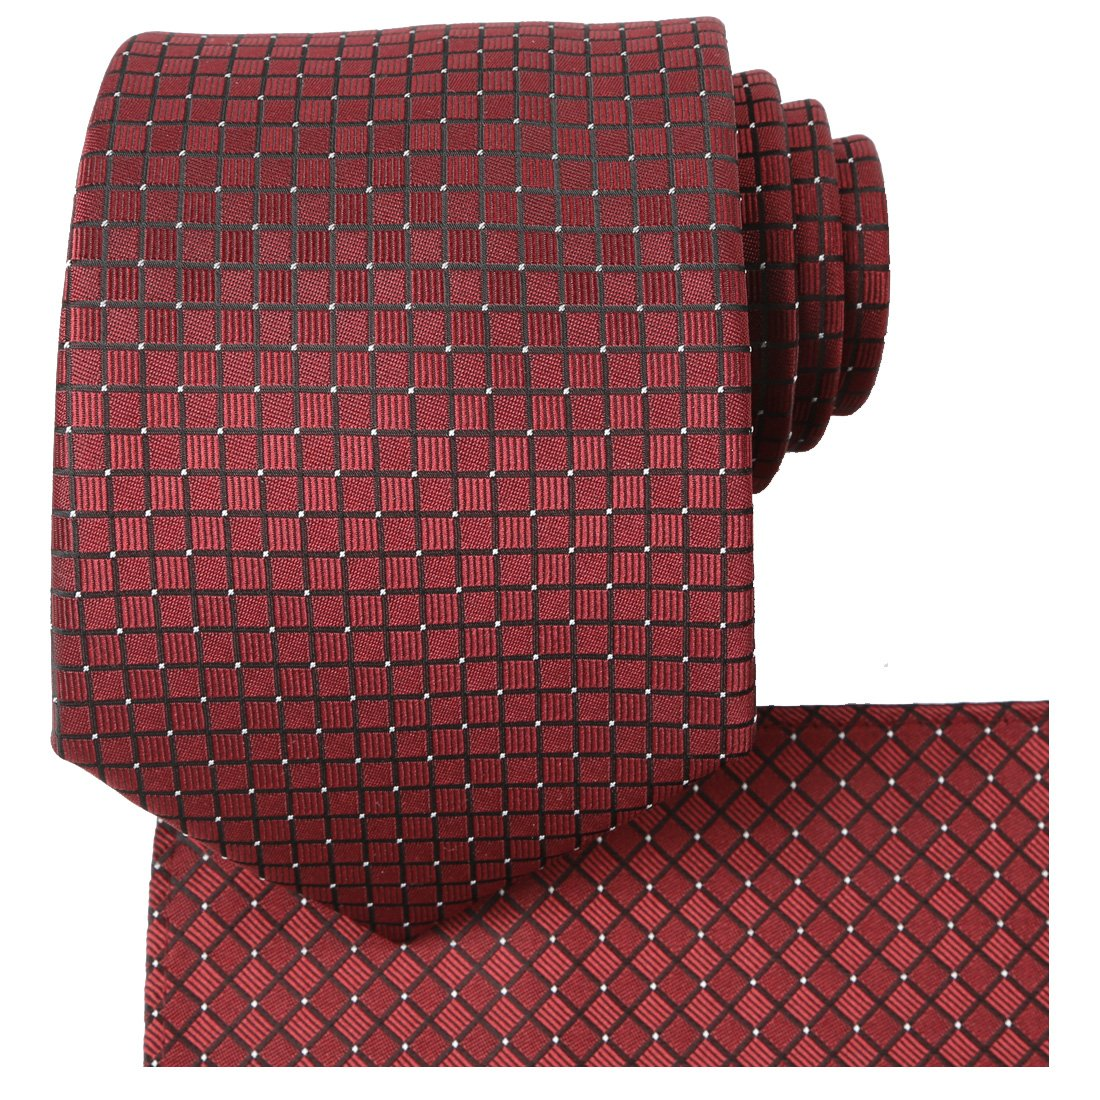 KissTies Burgundy Red Tie Set Solid Necktie + Hanky + Gift Box